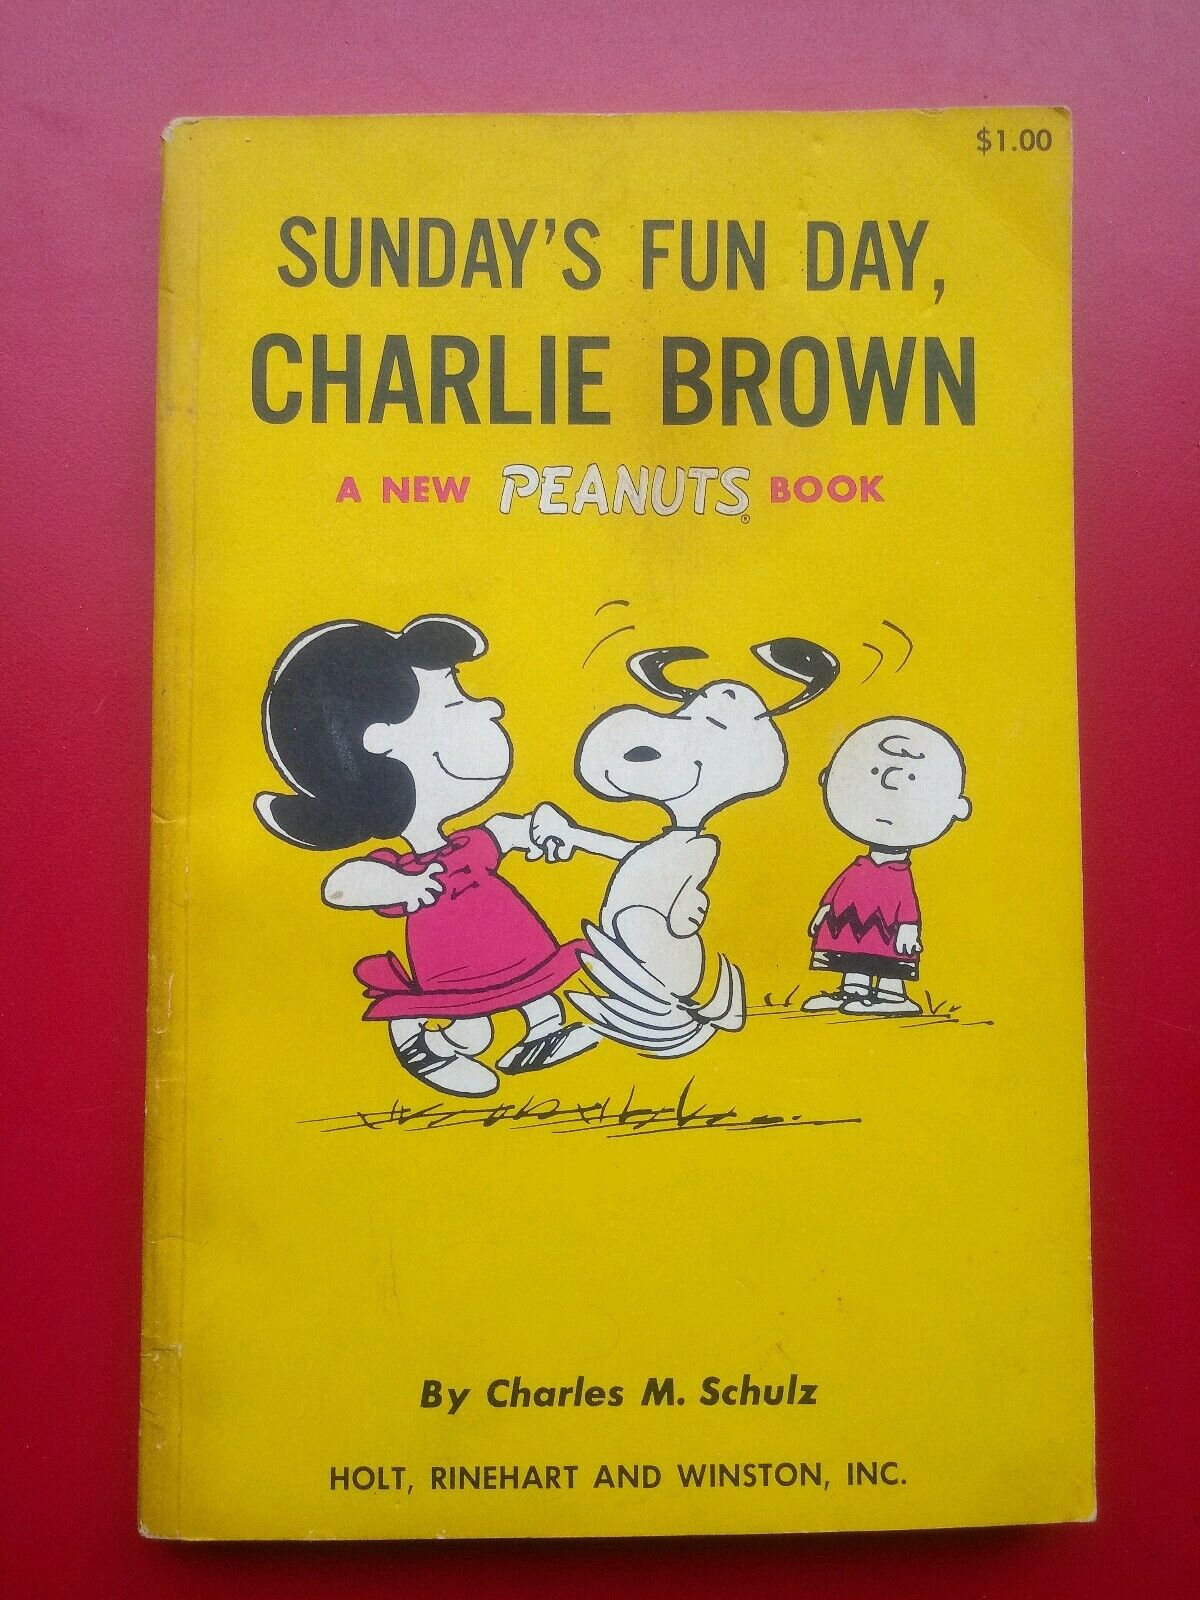 Snoopy Peanuts Trading Card Set Boxed Set Charlie Brown Schulz Fun!